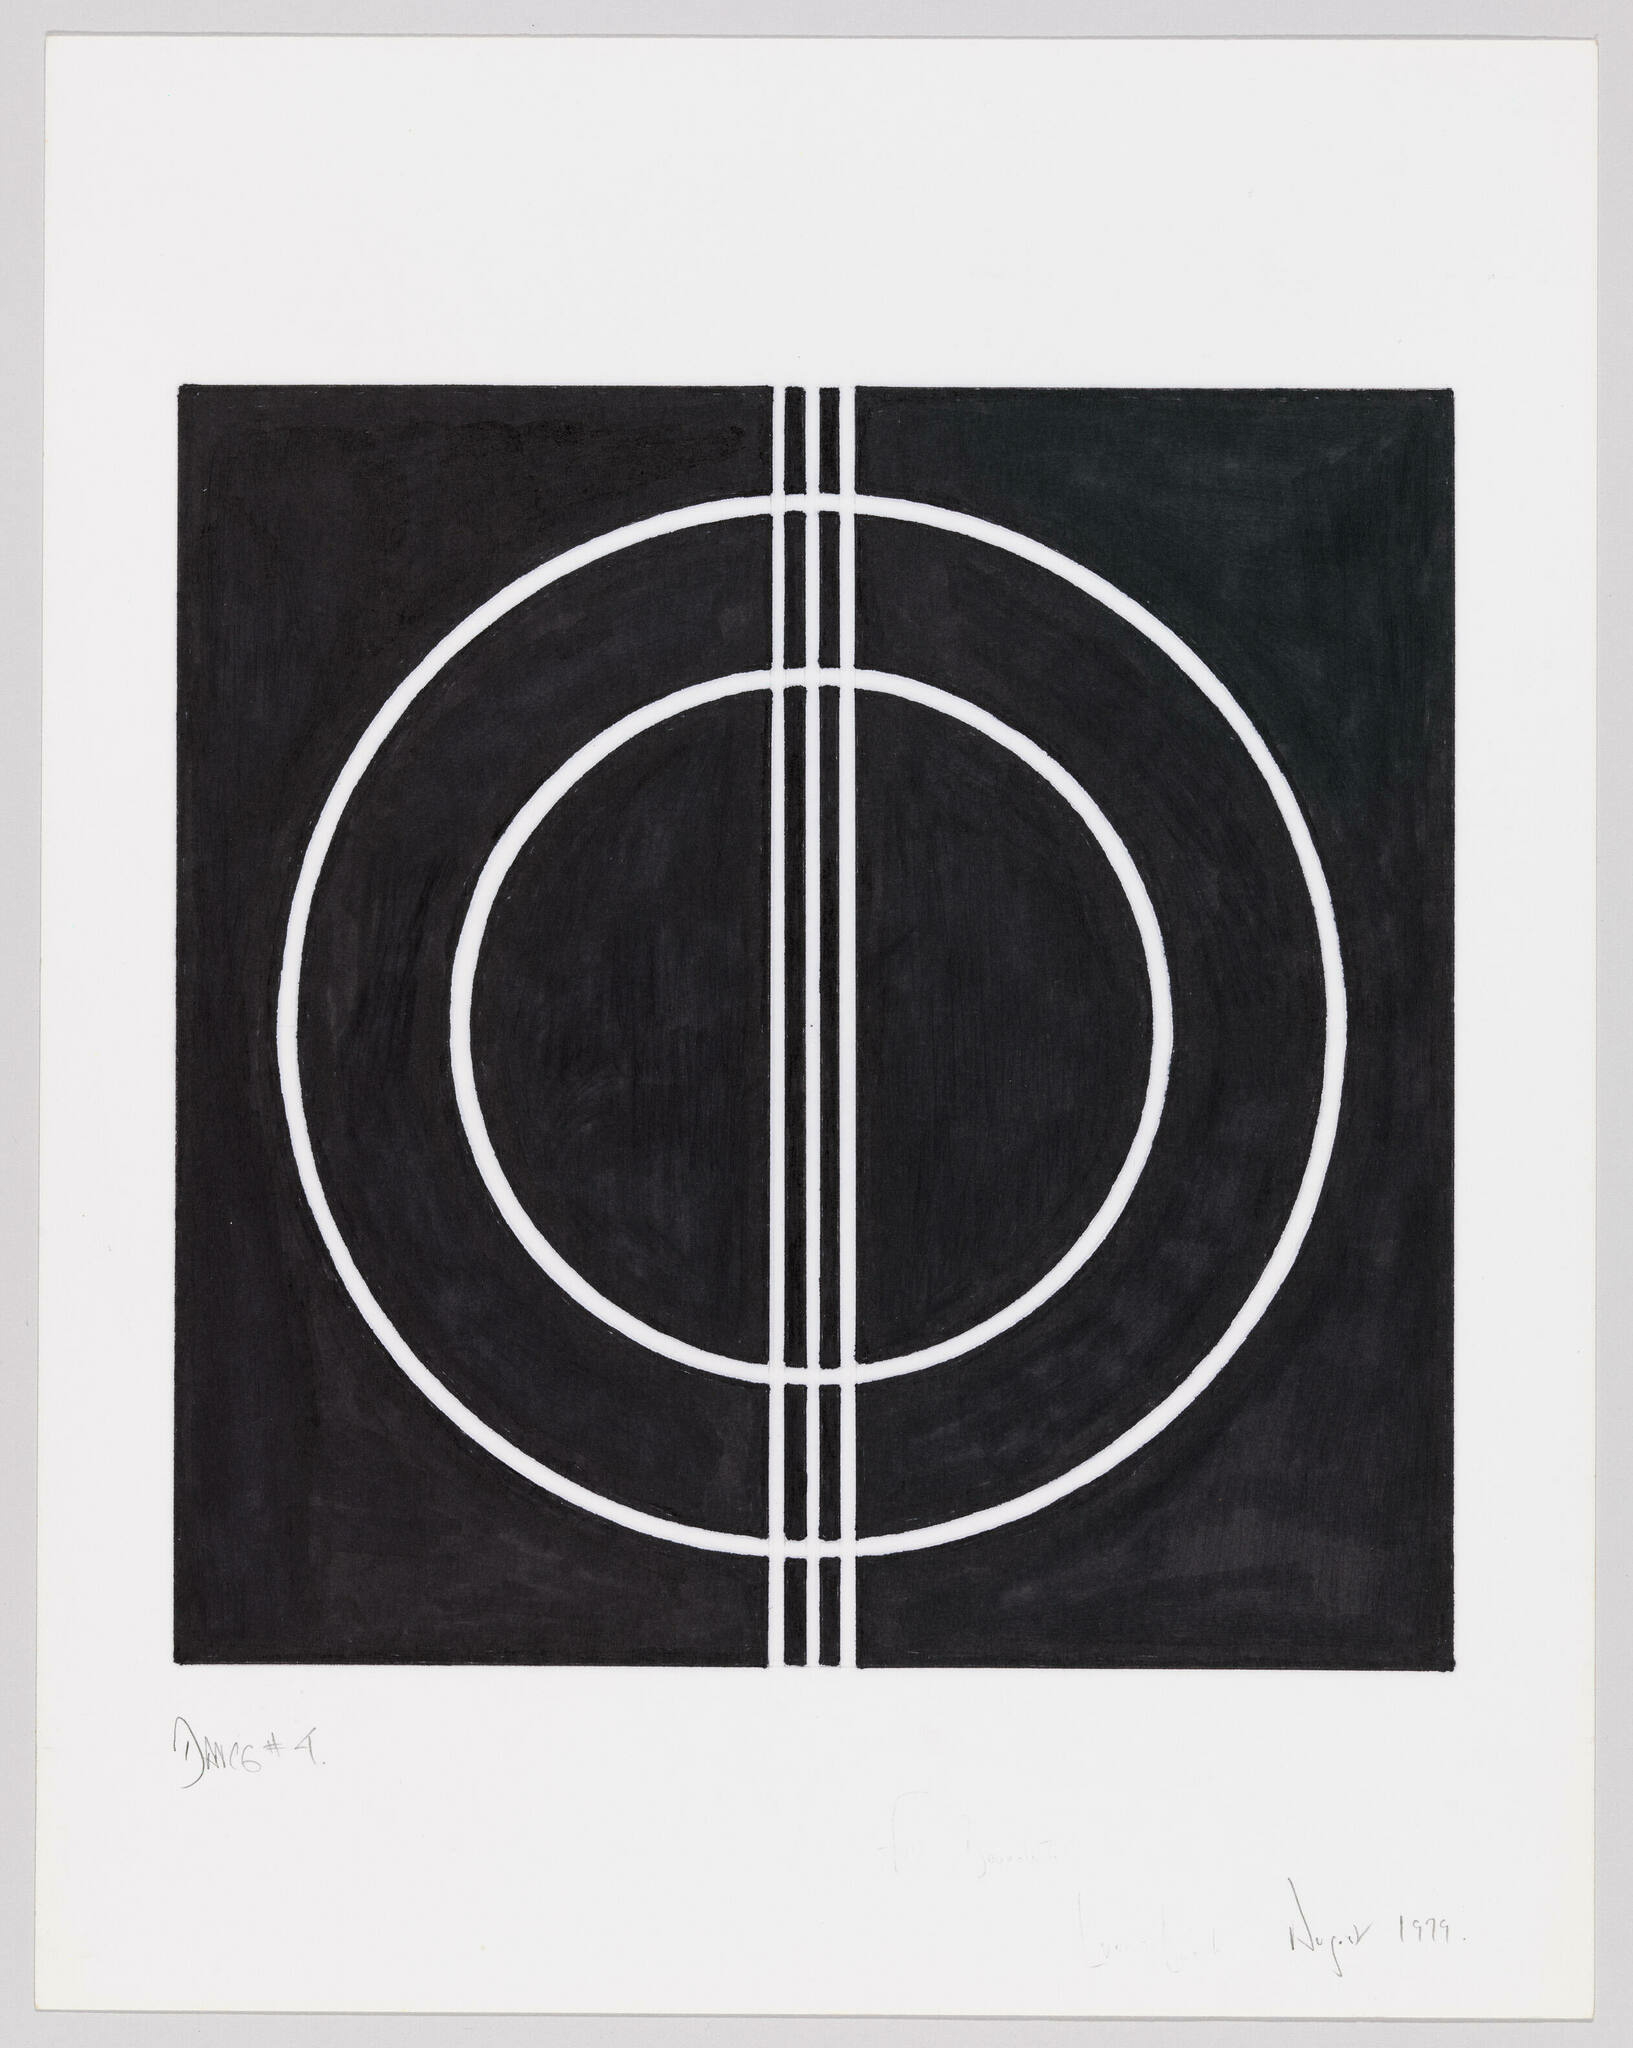 Two thin white concentric circles broken by three vertical lines against a black square background